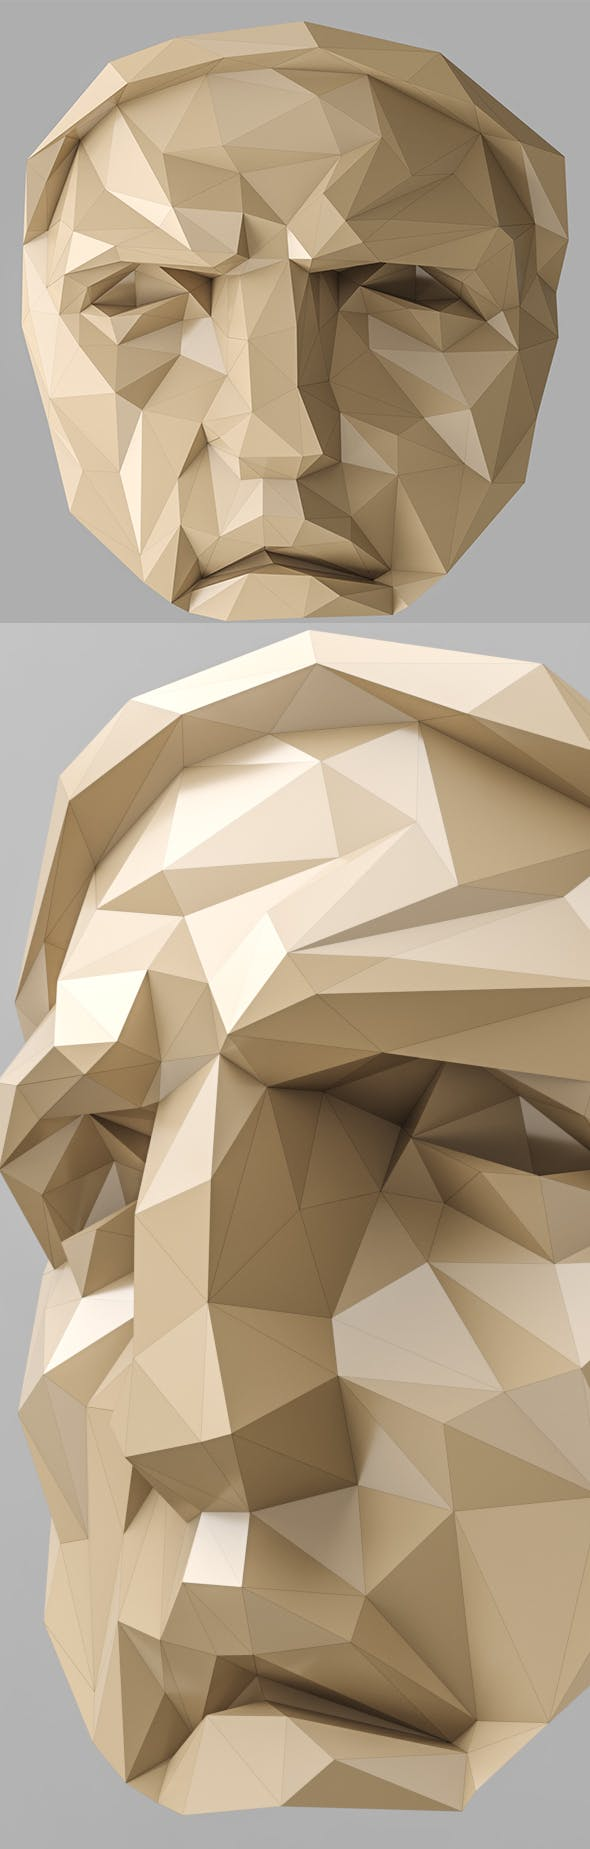 Lowpoly Face 001 - 3DOcean Item for Sale